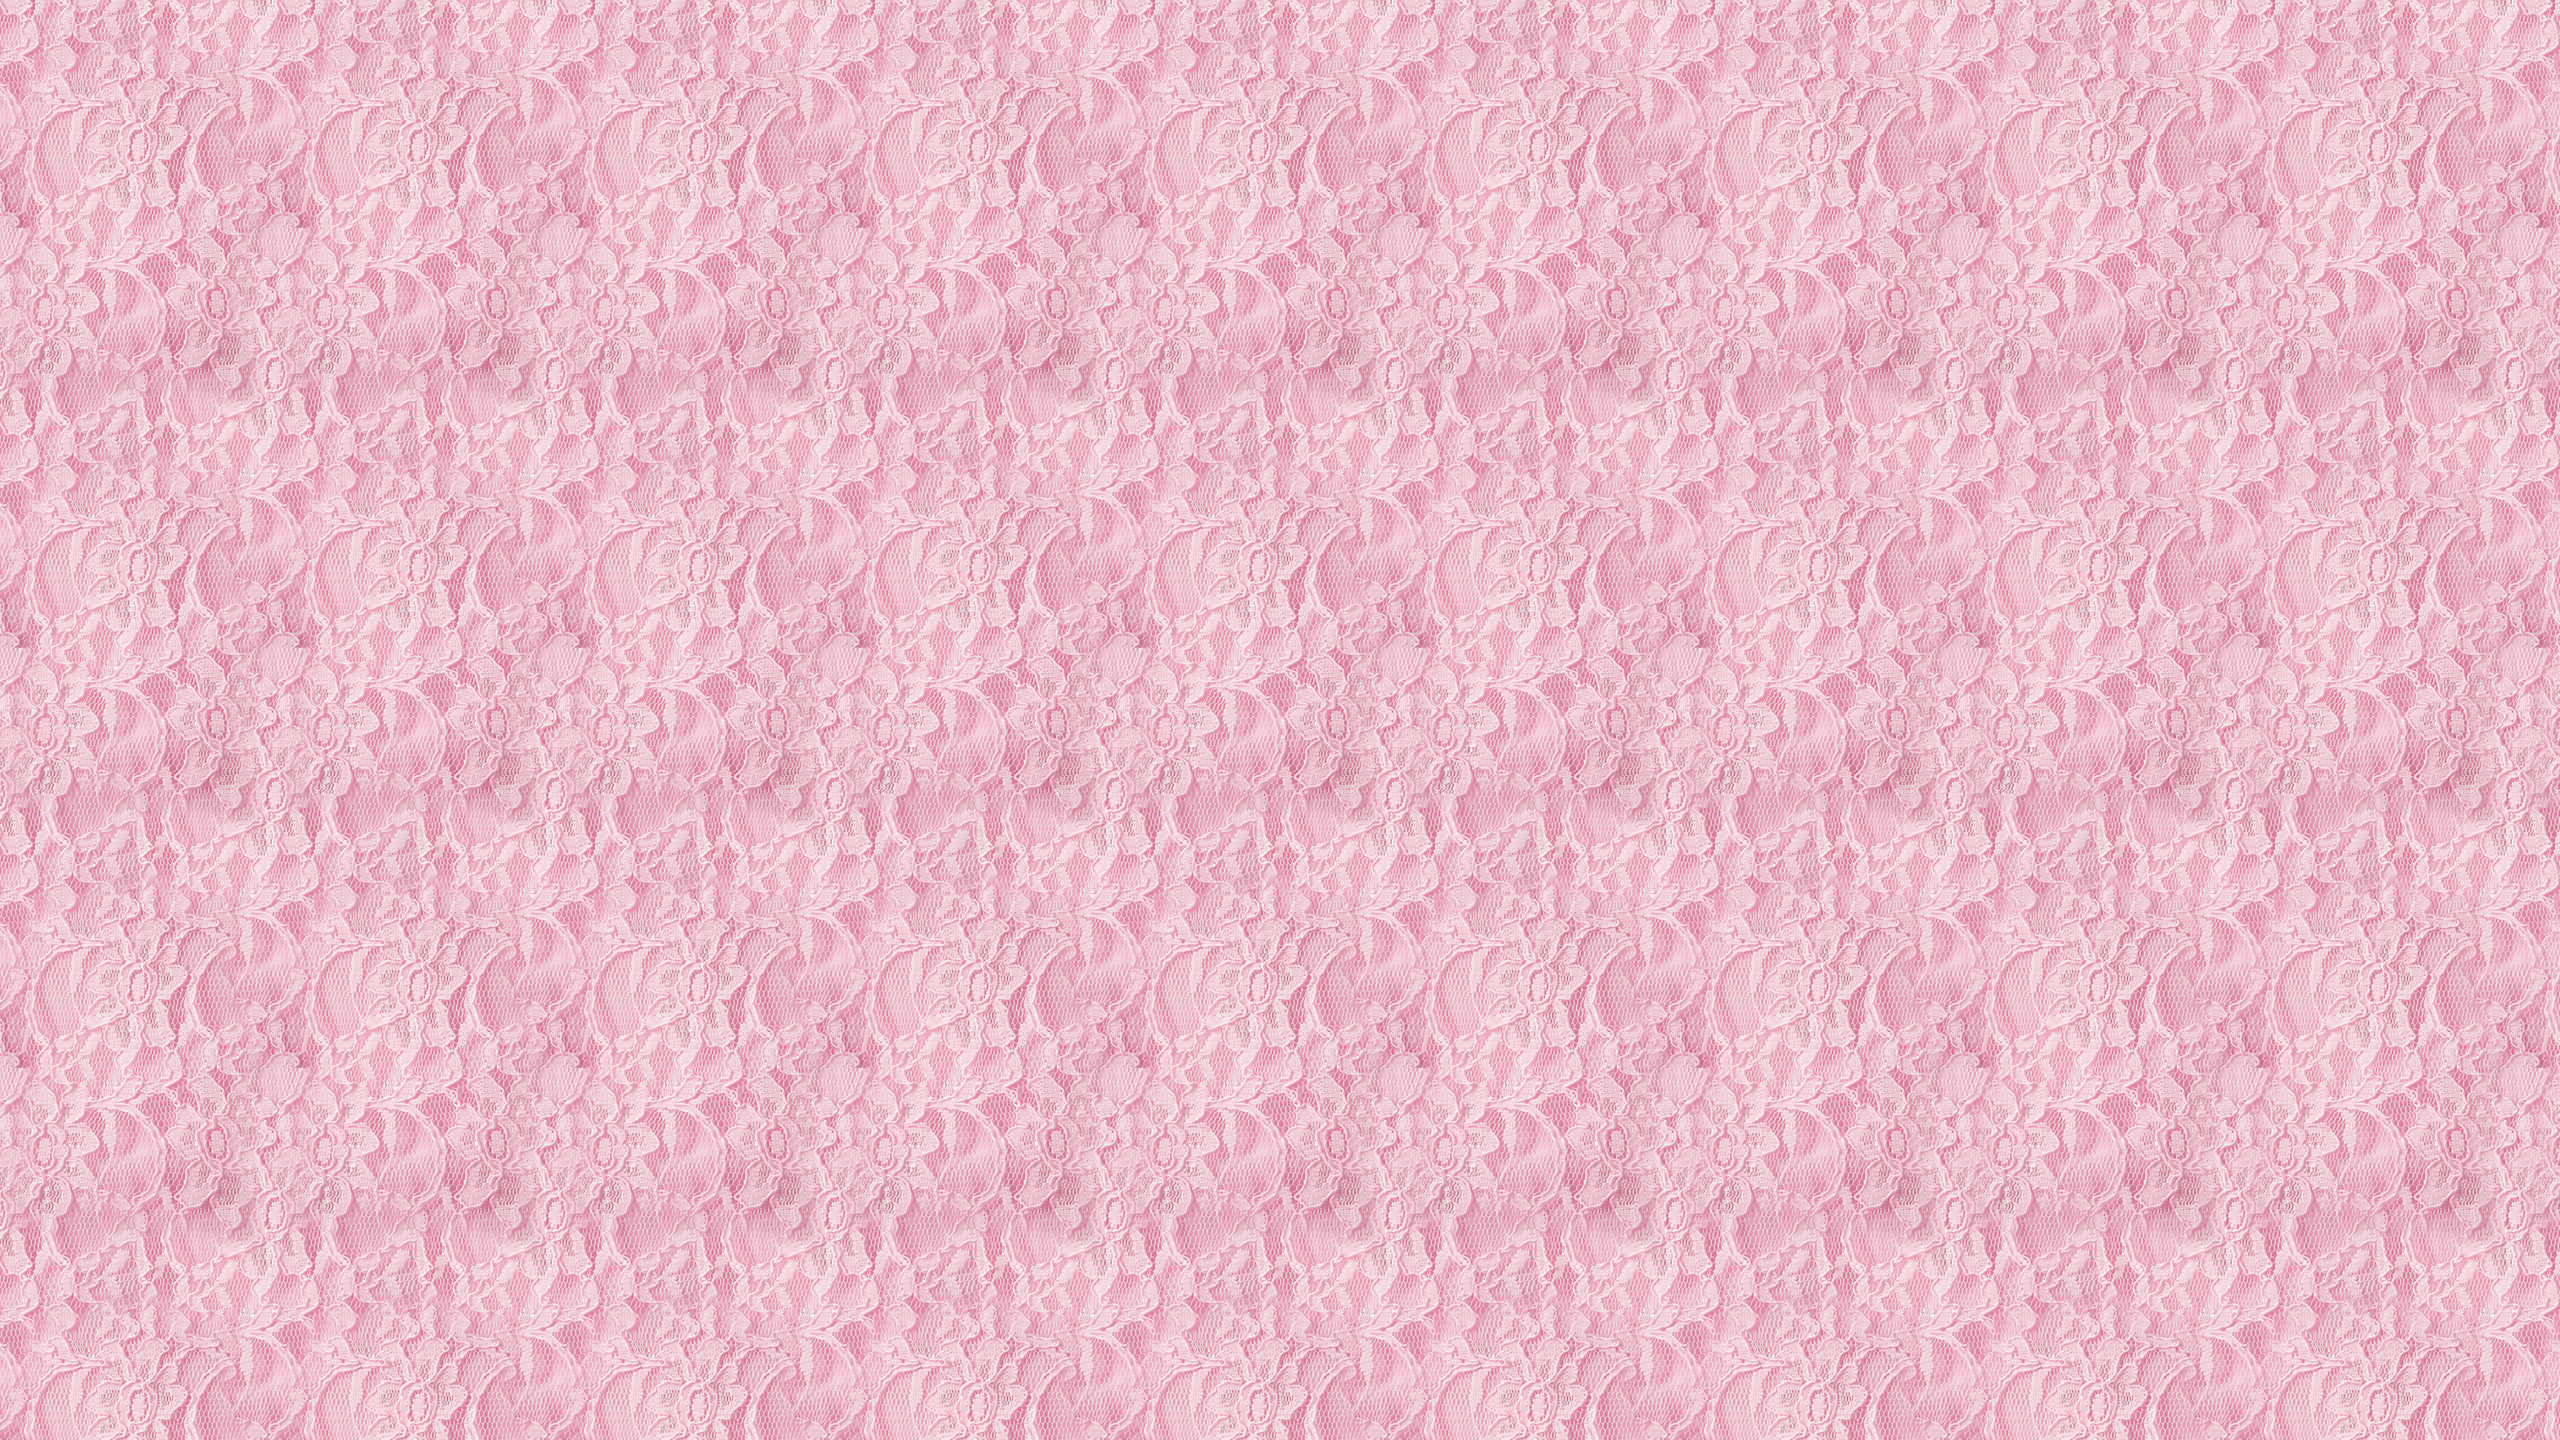 Res: 2560x1440, this Pink Lace Desktop Wallpaper is easy. Just save the wallpaper …